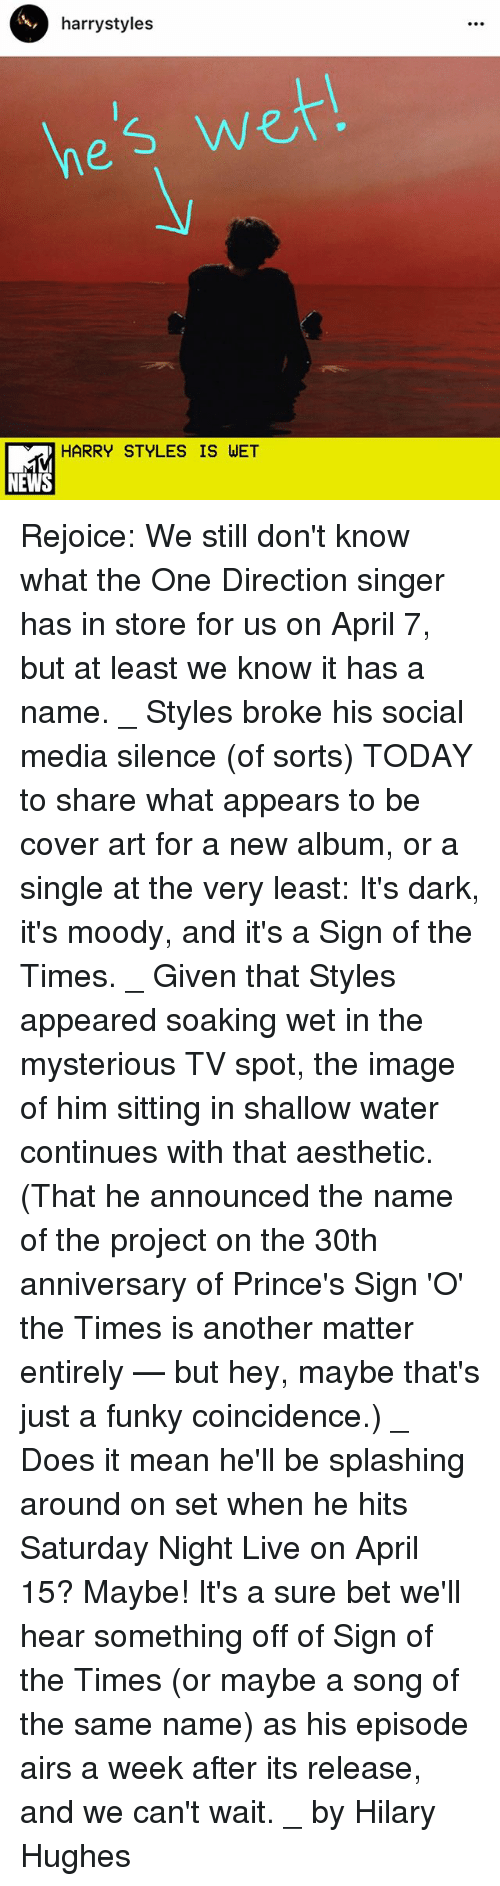 Memes, One Direction, and Saturday Night Live: harry styles  es Wei  HARRY STYLES IS WET Rejoice: We still don't know what the One Direction singer has in store for us on April 7, but at least we know it has a name. _ Styles broke his social media silence (of sorts) TODAY to share what appears to be cover art for a new album, or a single at the very least: It's dark, it's moody, and it's a Sign of the Times. _ Given that Styles appeared soaking wet in the mysterious TV spot, the image of him sitting in shallow water continues with that aesthetic. (That he announced the name of the project on the 30th anniversary of Prince's Sign 'O' the Times is another matter entirely — but hey, maybe that's just a funky coincidence.) _ Does it mean he'll be splashing around on set when he hits Saturday Night Live on April 15? Maybe! It's a sure bet we'll hear something off of Sign of the Times (or maybe a song of the same name) as his episode airs a week after its release, and we can't wait. _ by Hilary Hughes